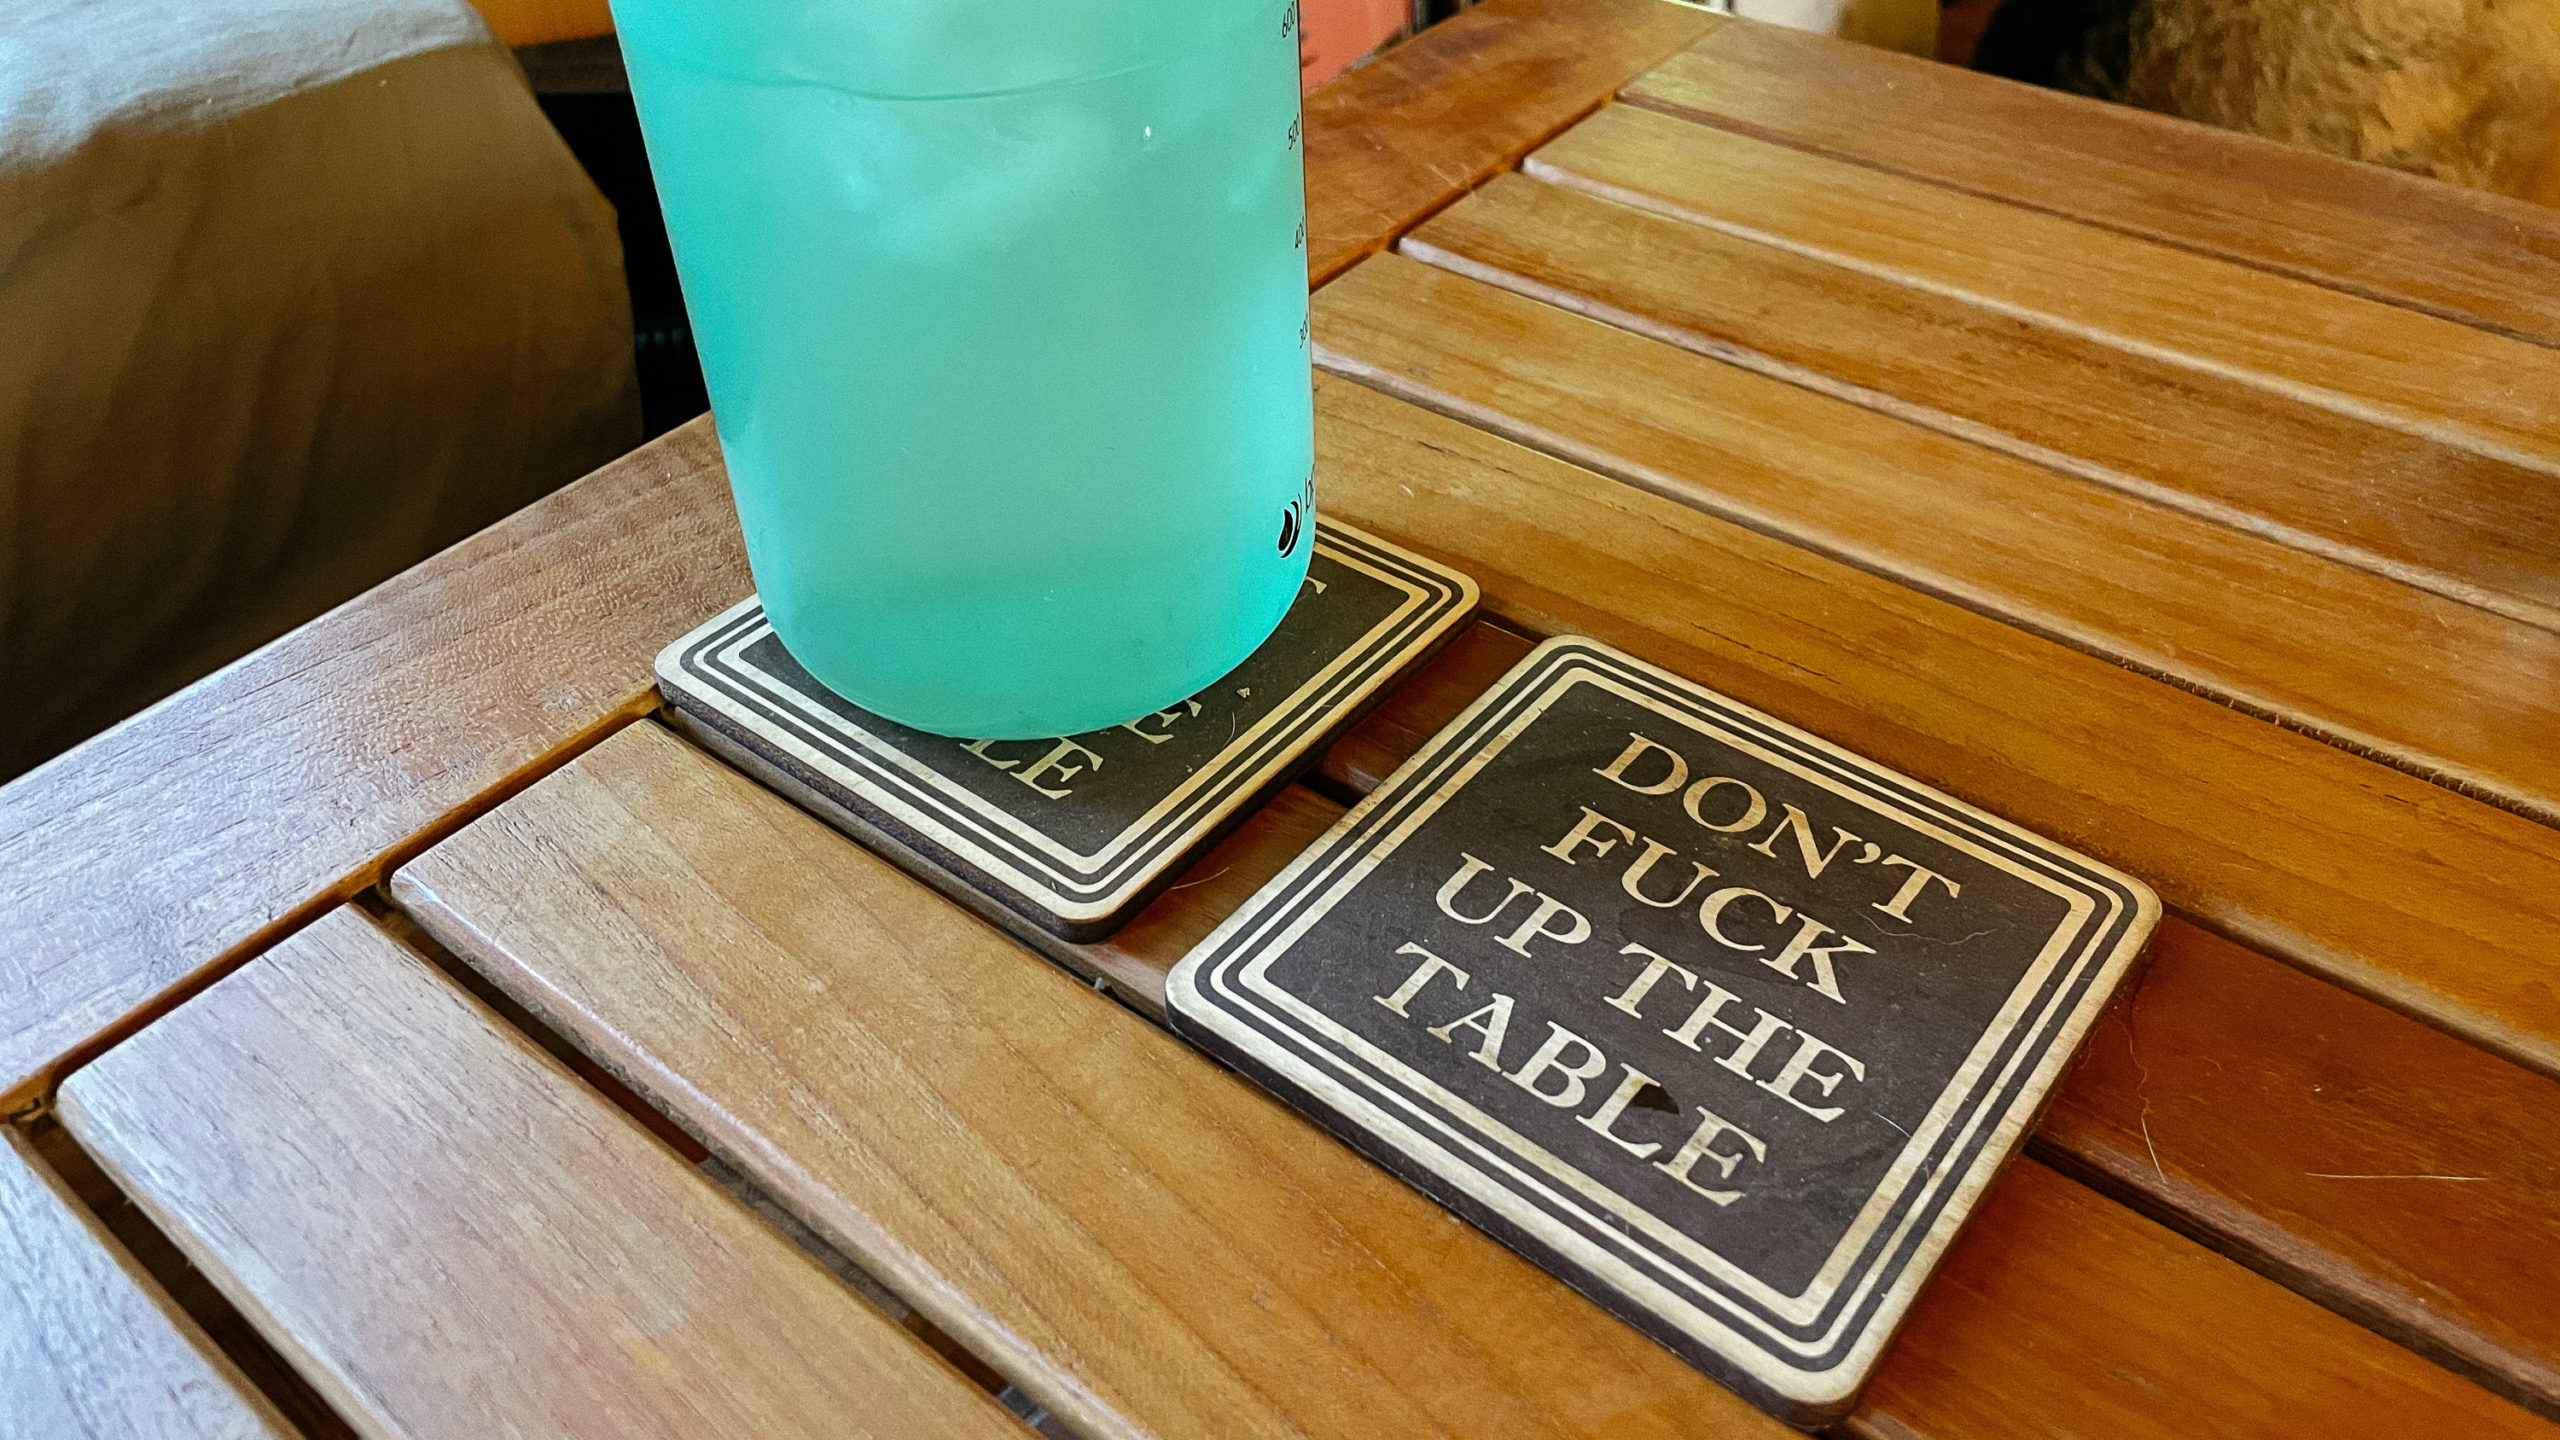 """A funny coaster that reads """"Don't fuck up the coffee table"""""""